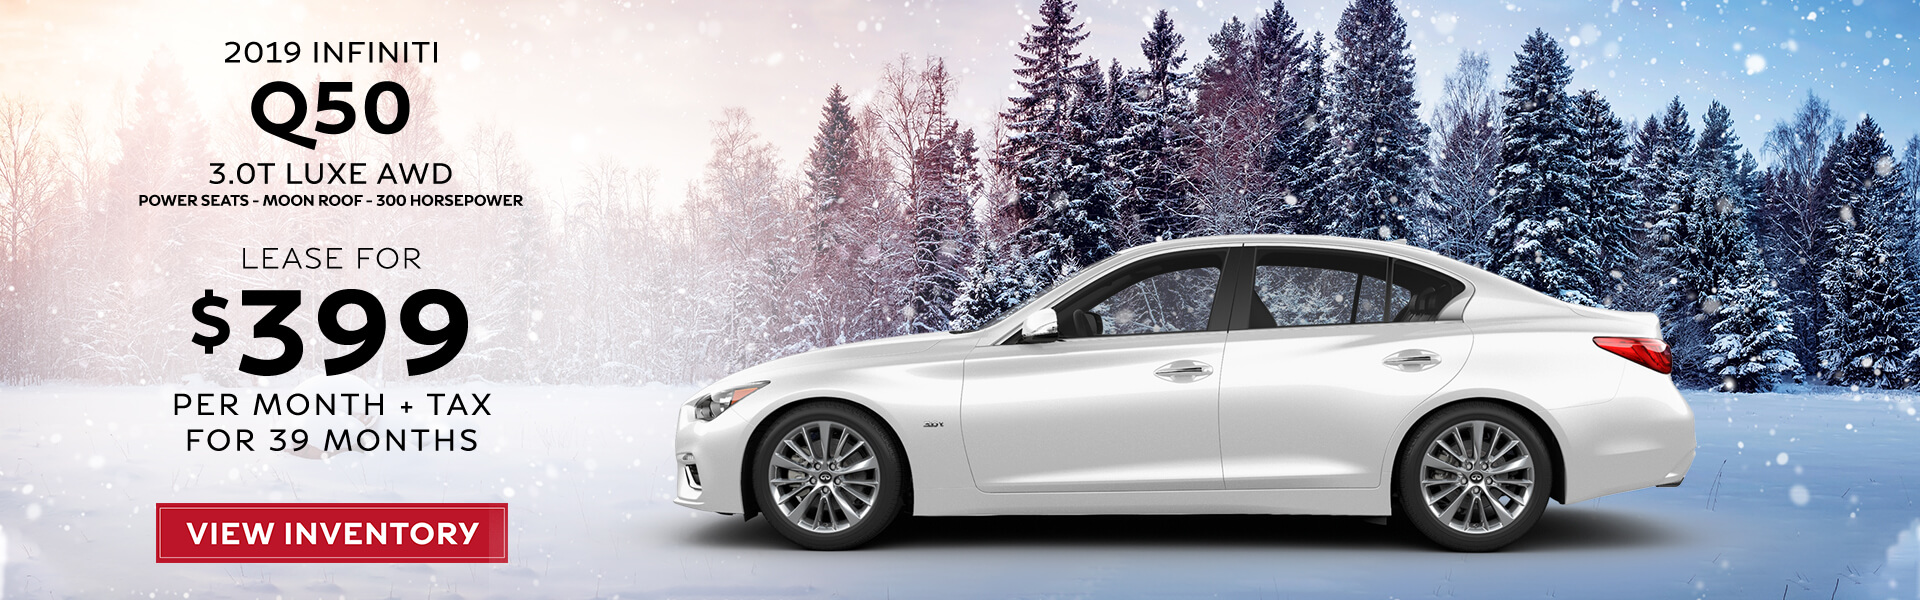 Q50 - Lease for 399